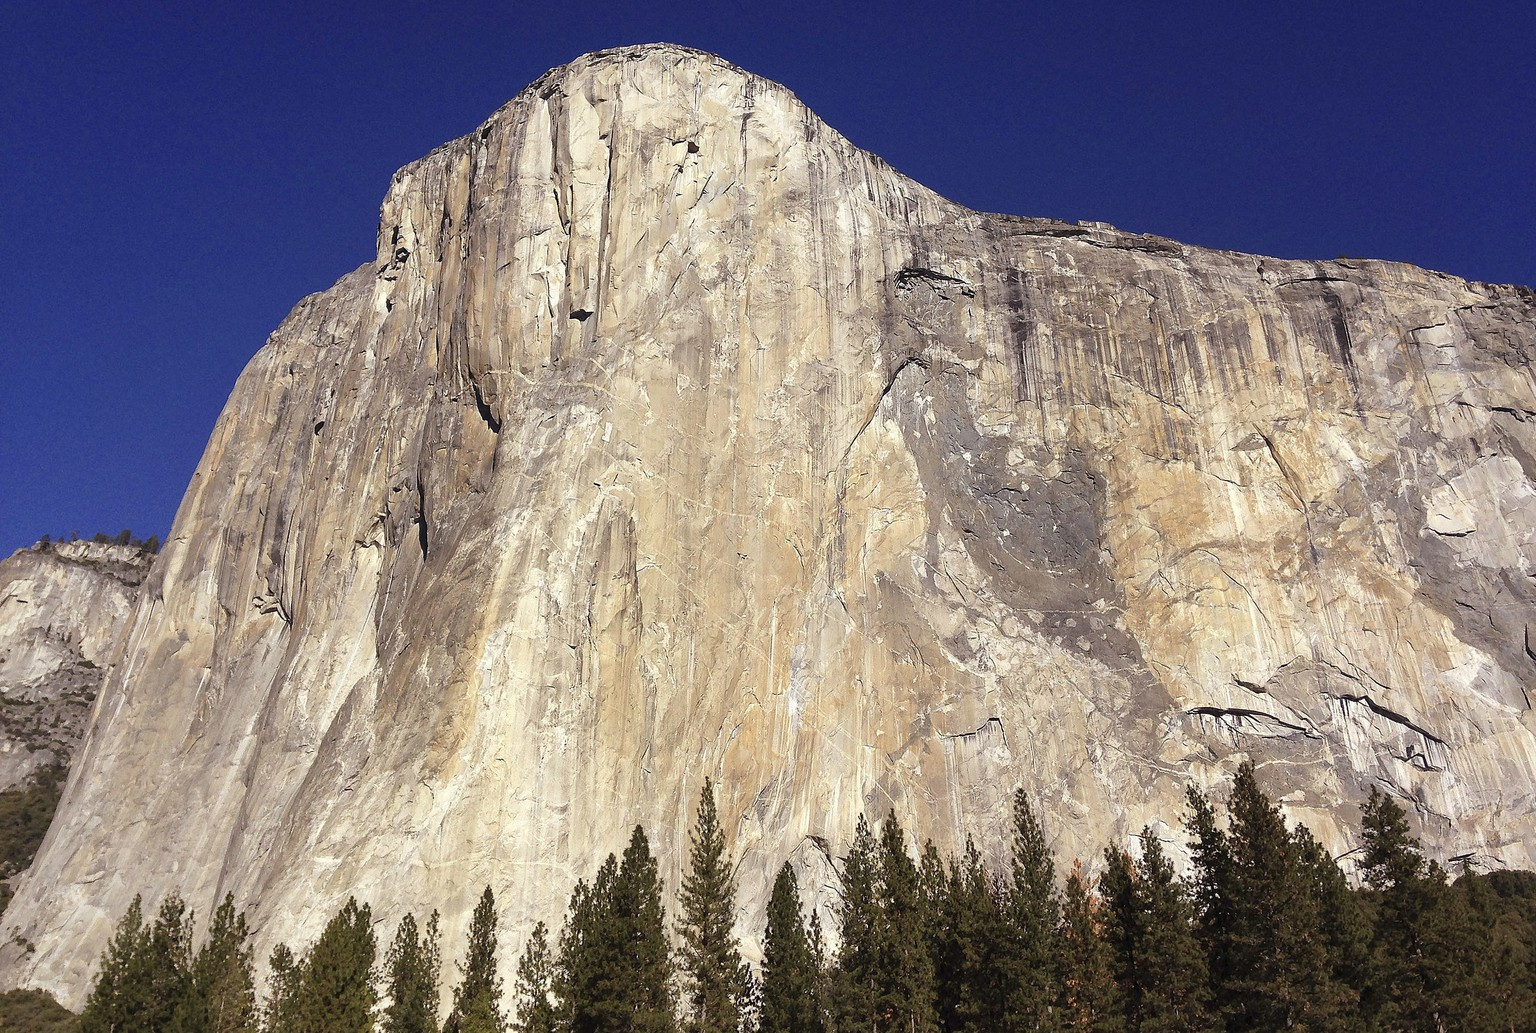 FILE - This Jan. 14, 2015, file photo, shows El Capitan in Yosemite National Park, Calif. A climber from the Czech Republic has scaled the rock wall found in record time. A spokesman for Black Diamond Equipment confirmed Tuesday, Nov. 22, 2016, that 23-year-old Adam Ondra completed a half-mile free-climb up the Dawn Wall on the famous El Capitan. (AP Photo/Ben Margot, File)